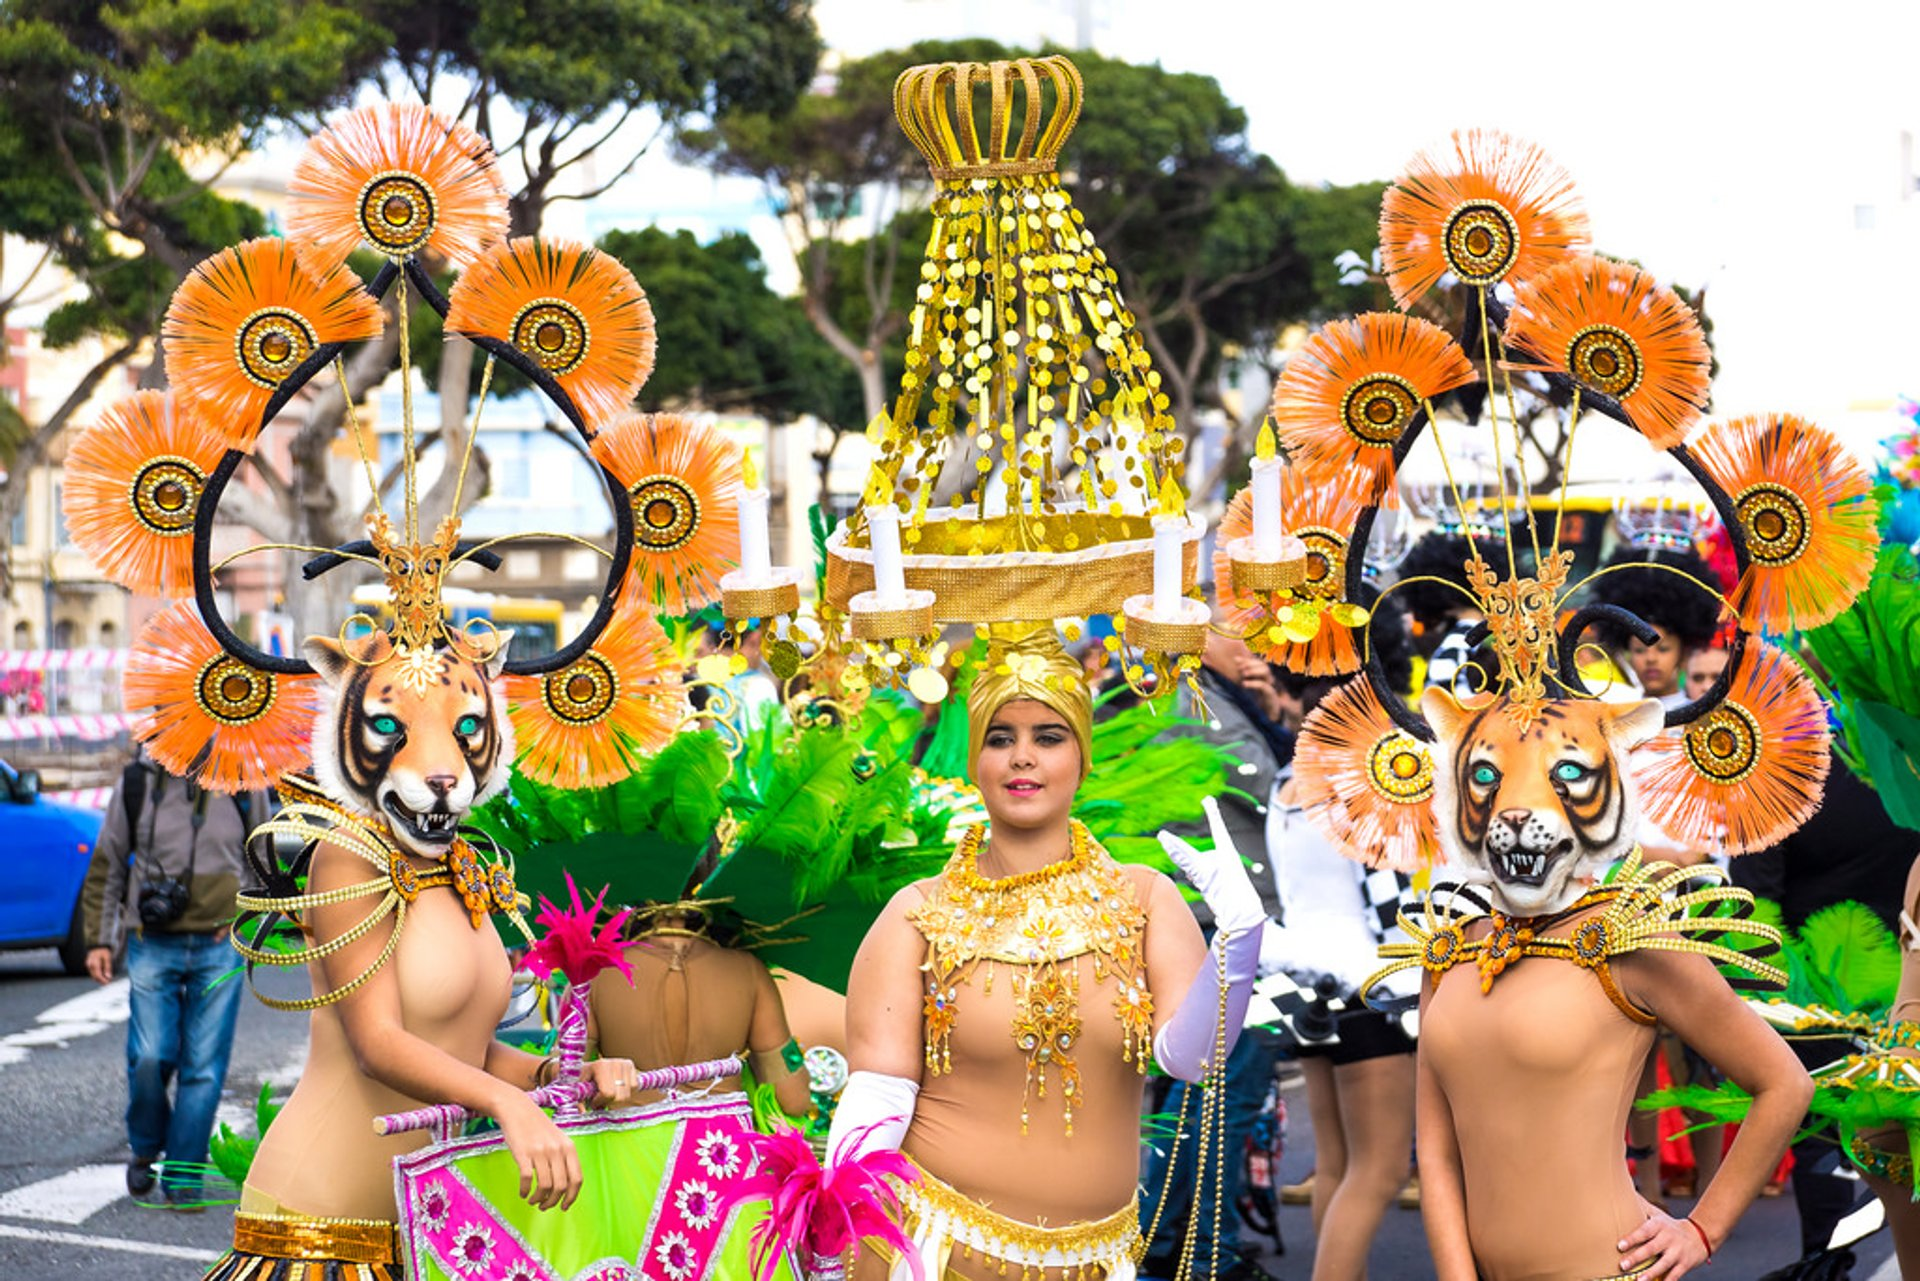 Las Palmas de Gran Canaria Carnival in Canary Islands - Best Season 2019